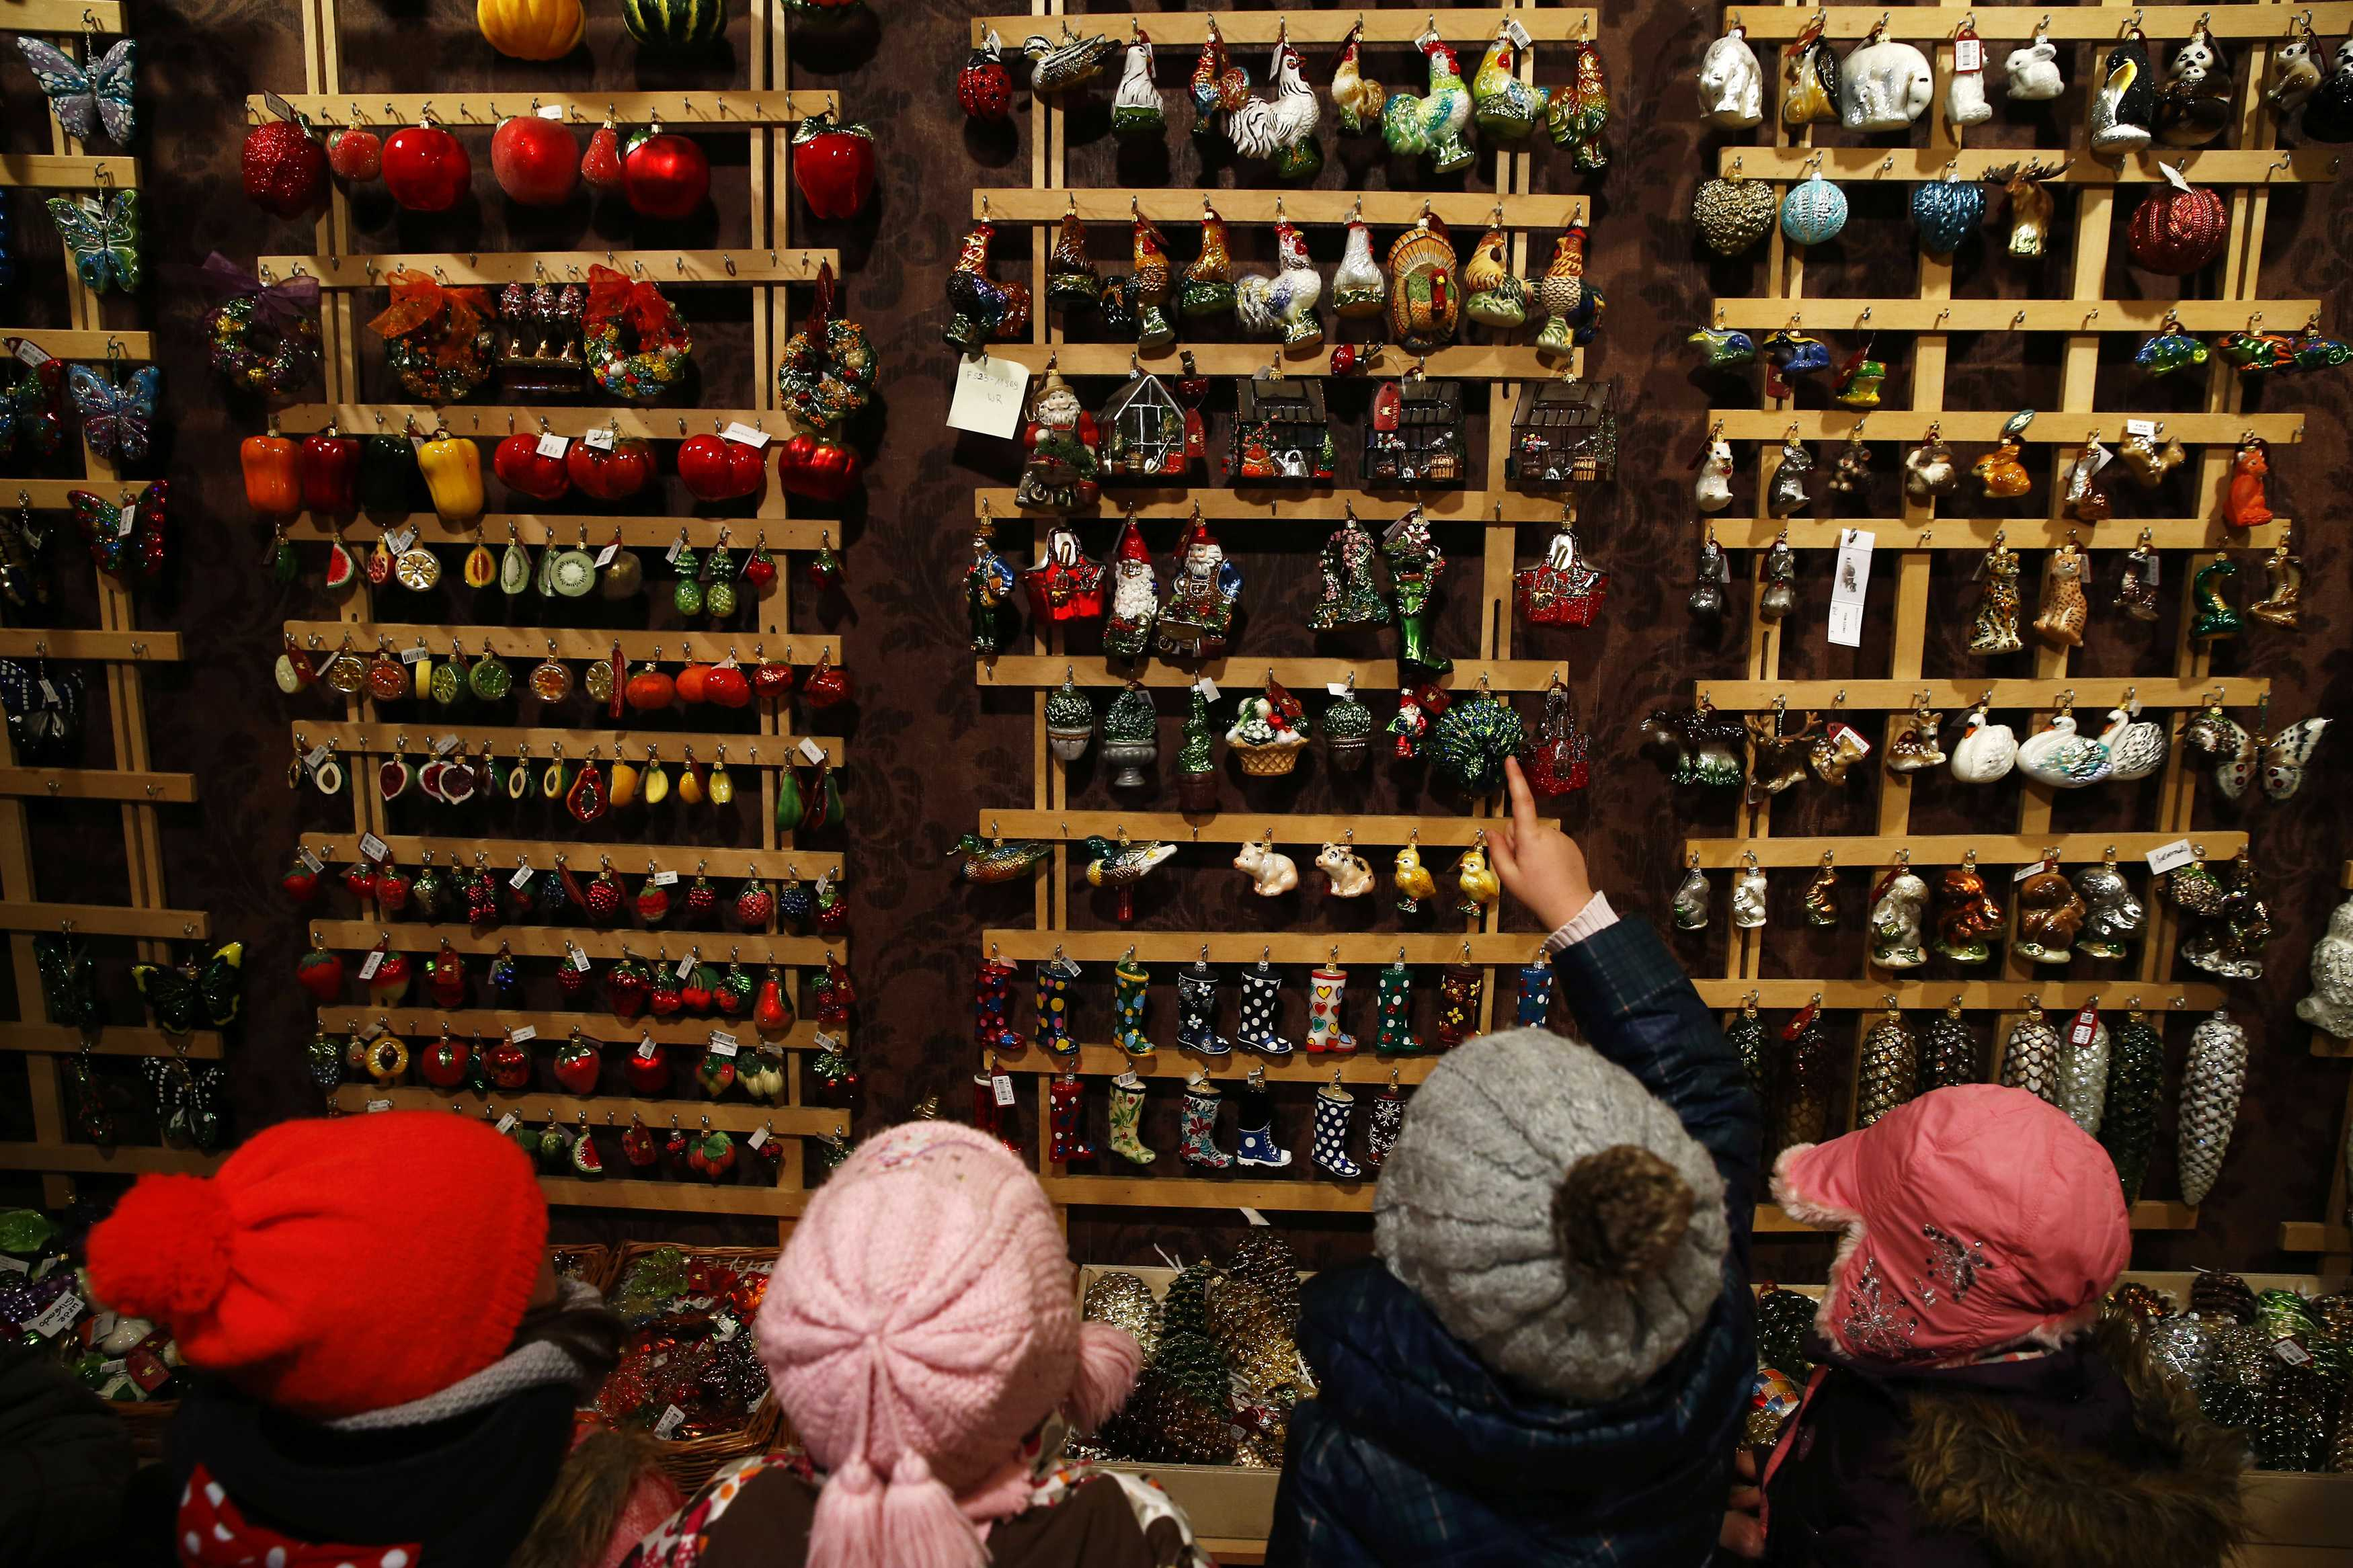 Polish glass ornaments - Children From Warsaw Kindergarten Point Glass Decorations As They Visit The Silverado Manufacture Of Hand Blown Christmas Ornaments In The Town Of Jozefow